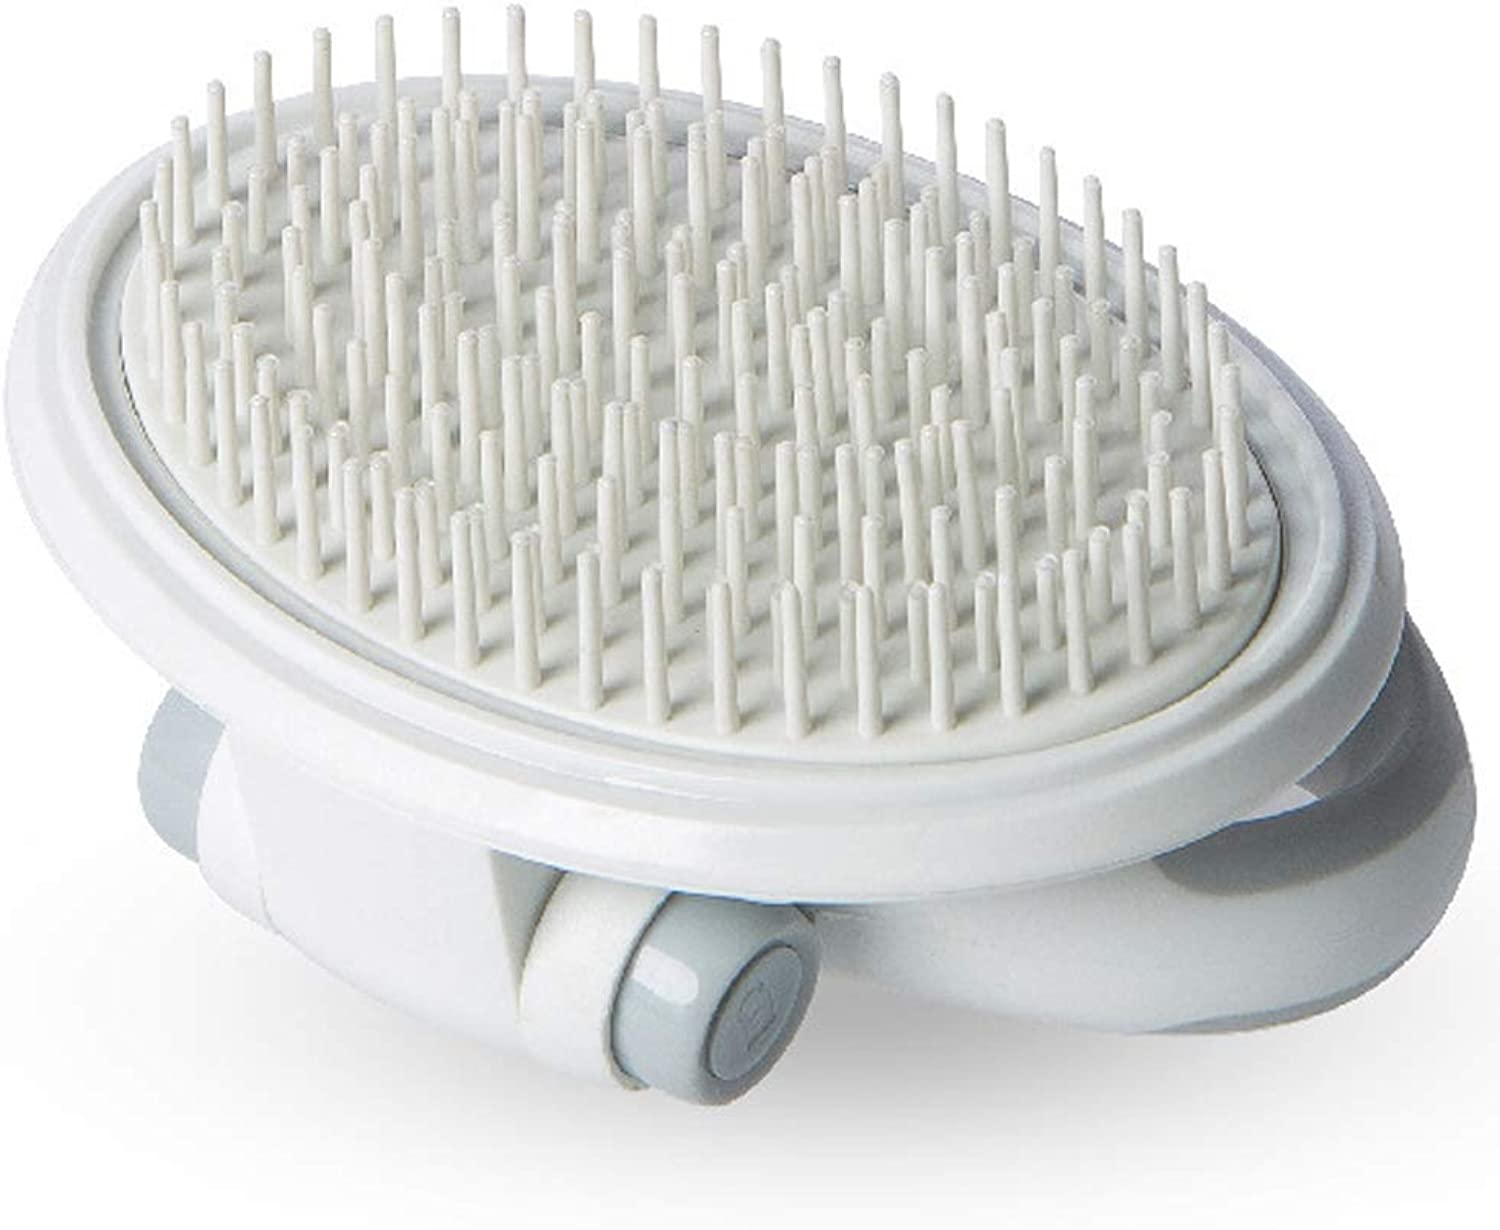 Dog pet Supplies New Stainless Steel Comb airbag Comb pet Hair Removal Comb Hair Comb pet Cats and Dogs can be Used,White